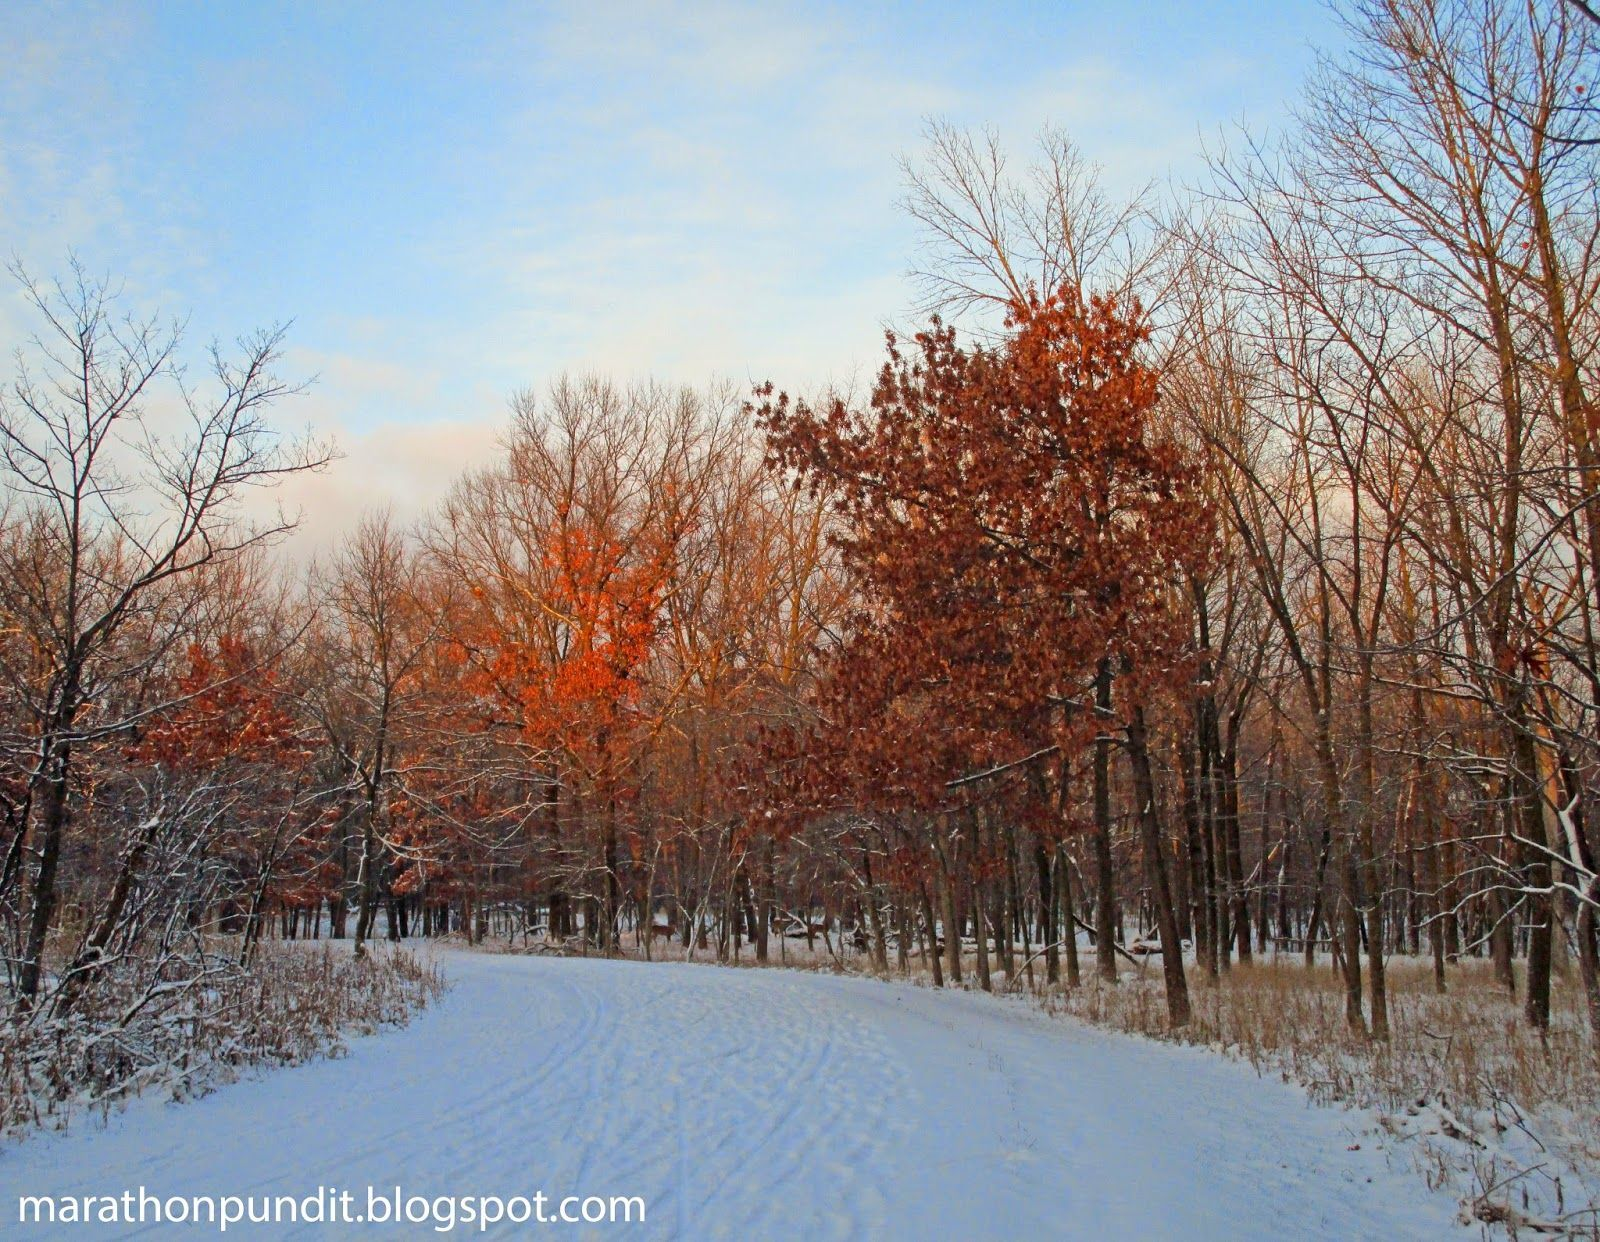 (Photos) First snow at Morton Grove's Miami Woods #mortongrove The North Branch running and cycling path after the first snow of the winter of 2015 at Morton Grove's Miami Woods. #mortongrove